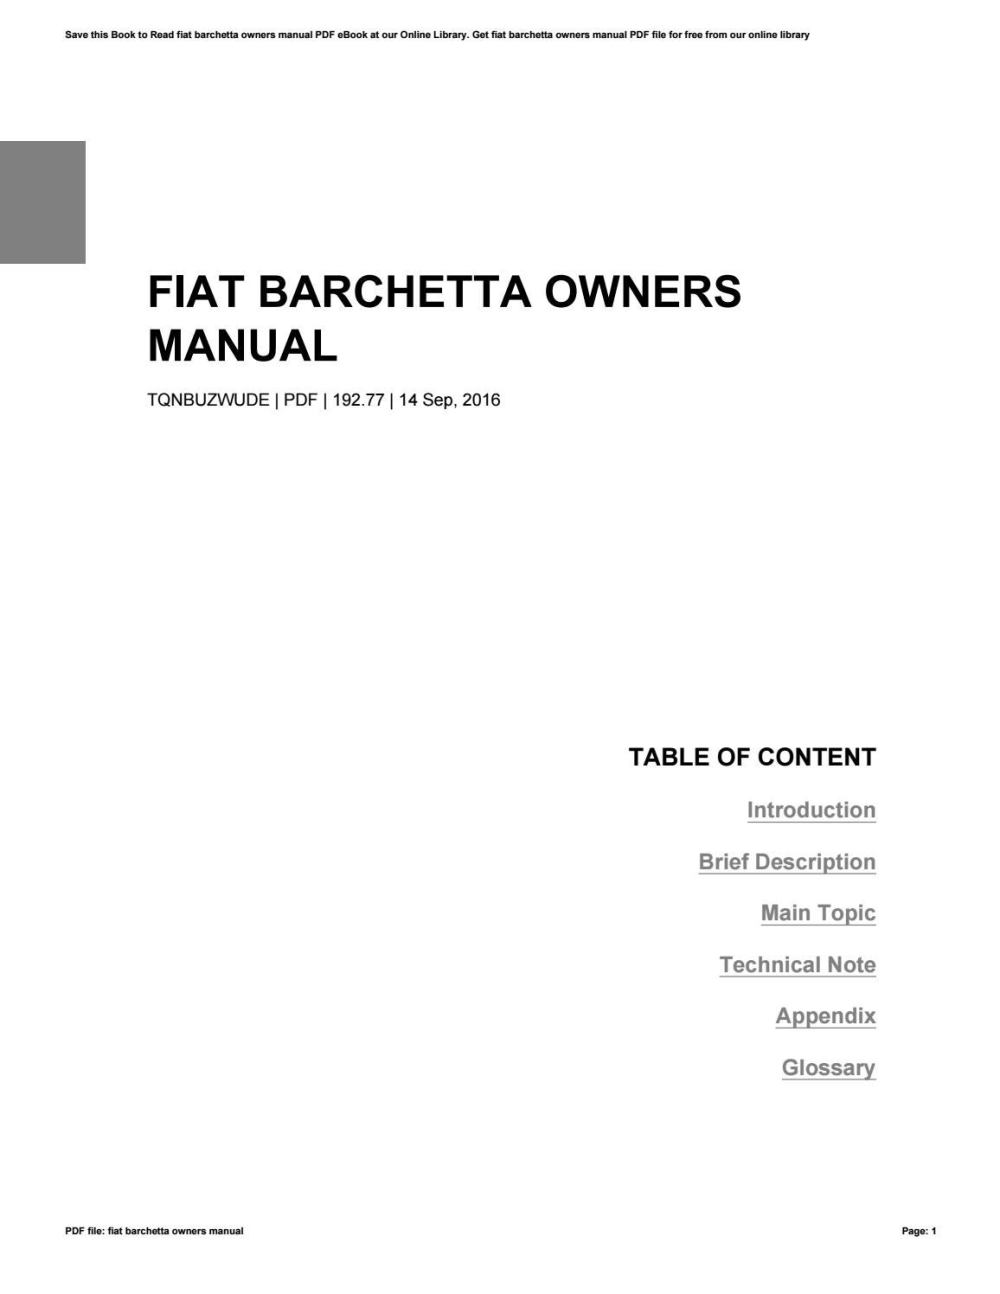 medium resolution of fiat barchetta wiring diagram 1 wiring diagram source 12 fiat 500 wiring diagram fiat barchetta wiring diagram